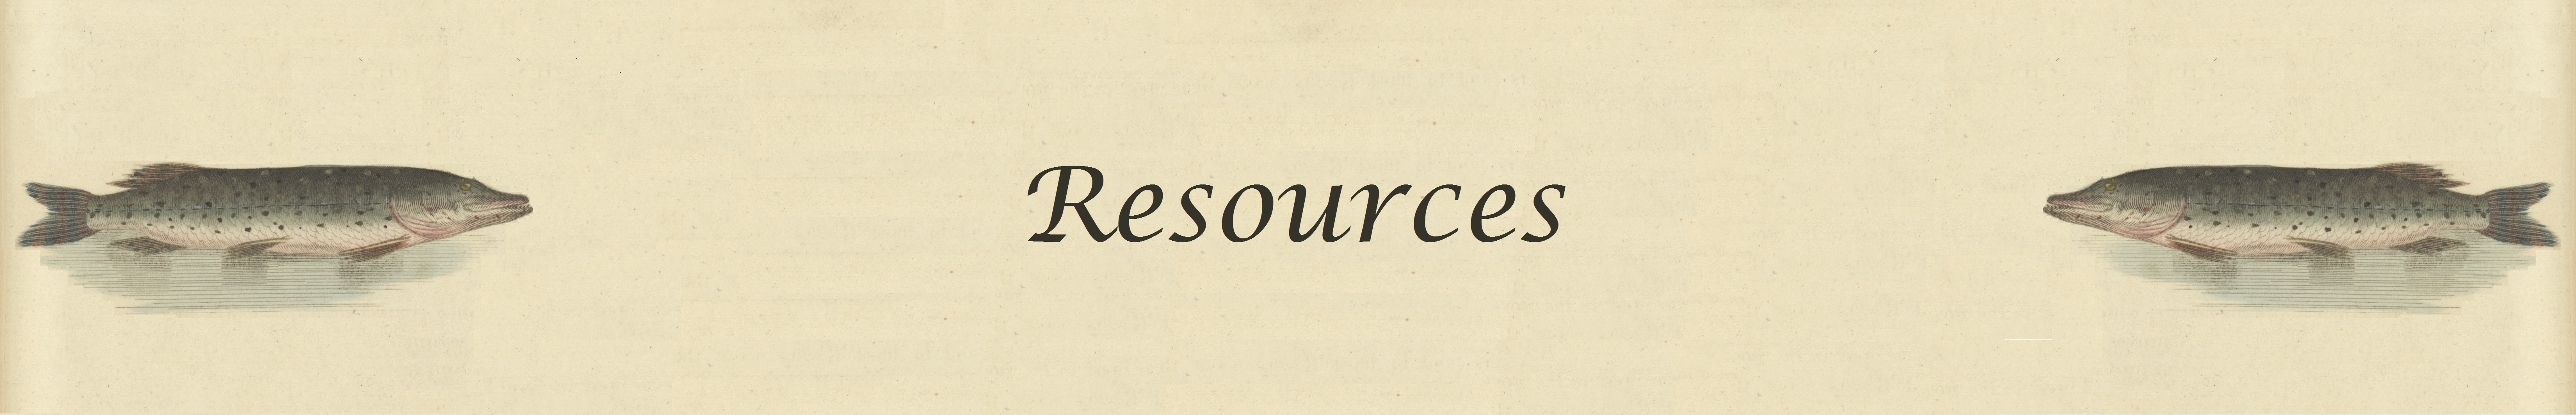 Resources Page Banner